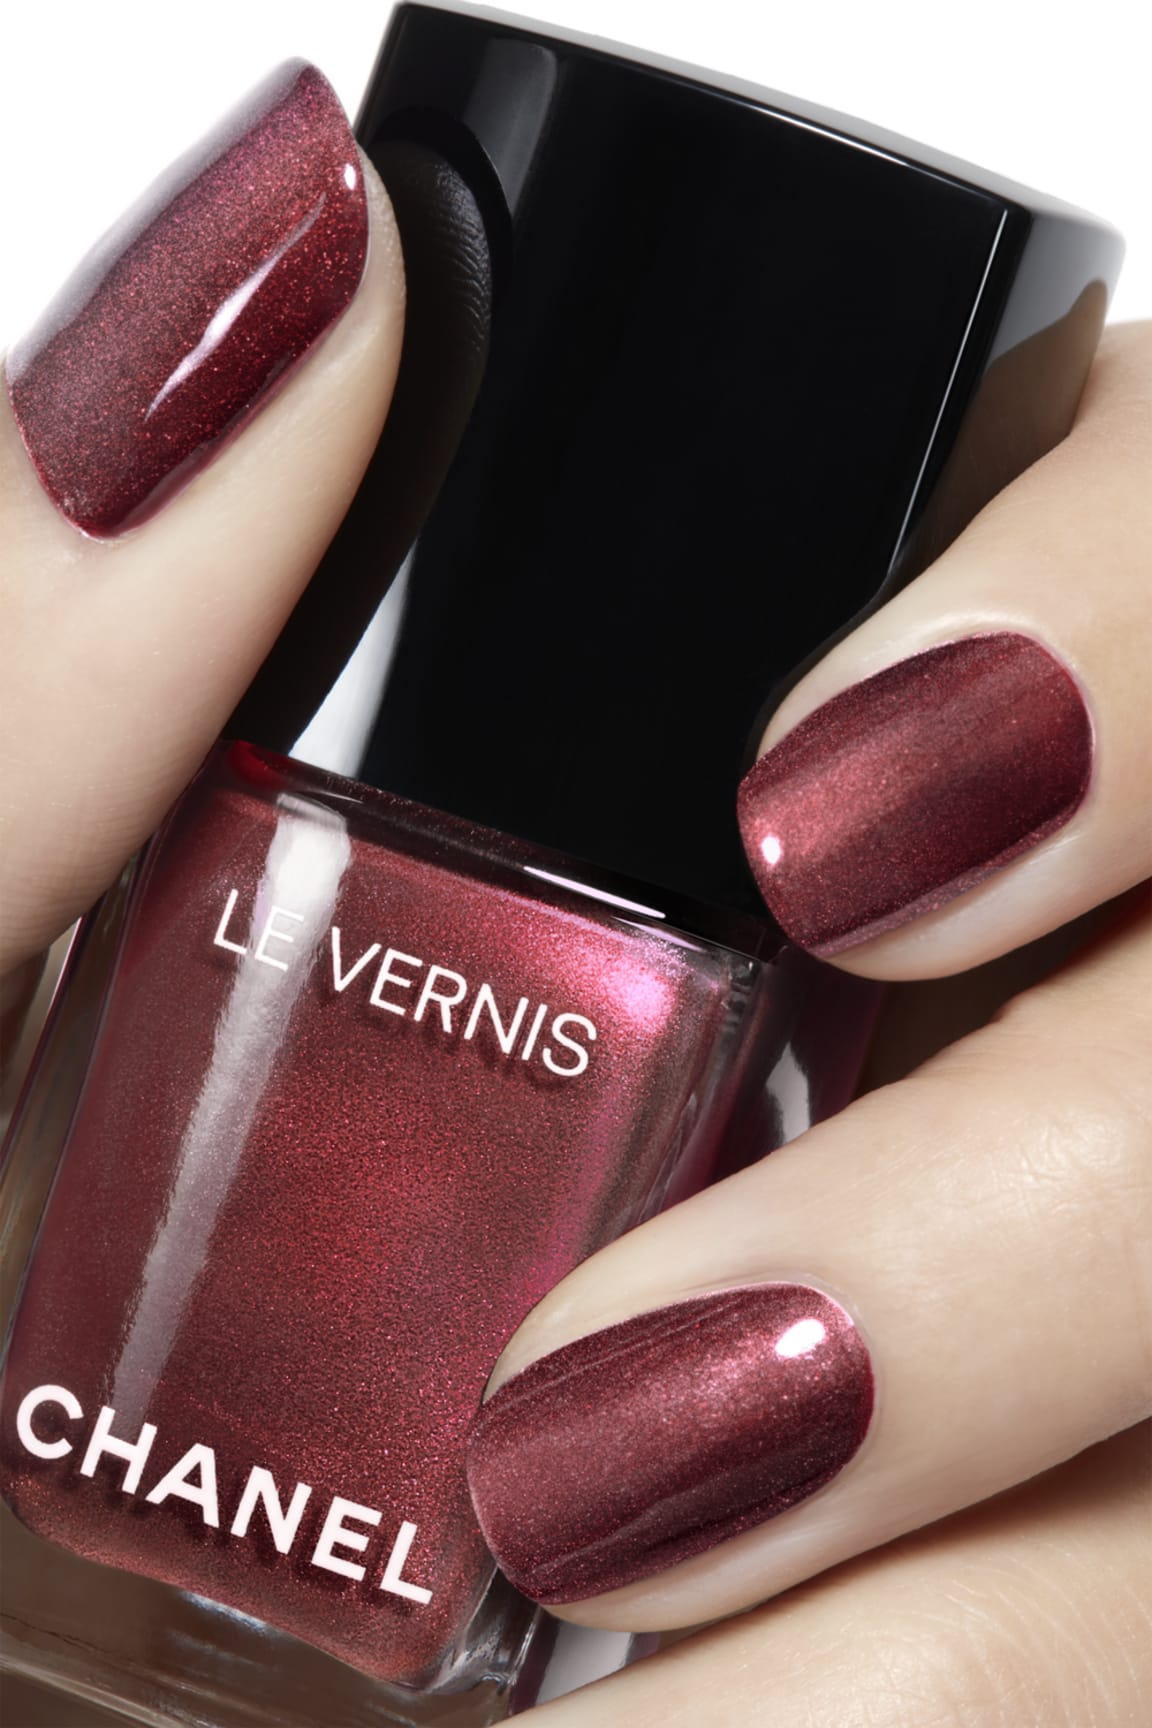 Application makeup visual 2 - LE VERNIS 891 - PERLE BURGUNDY